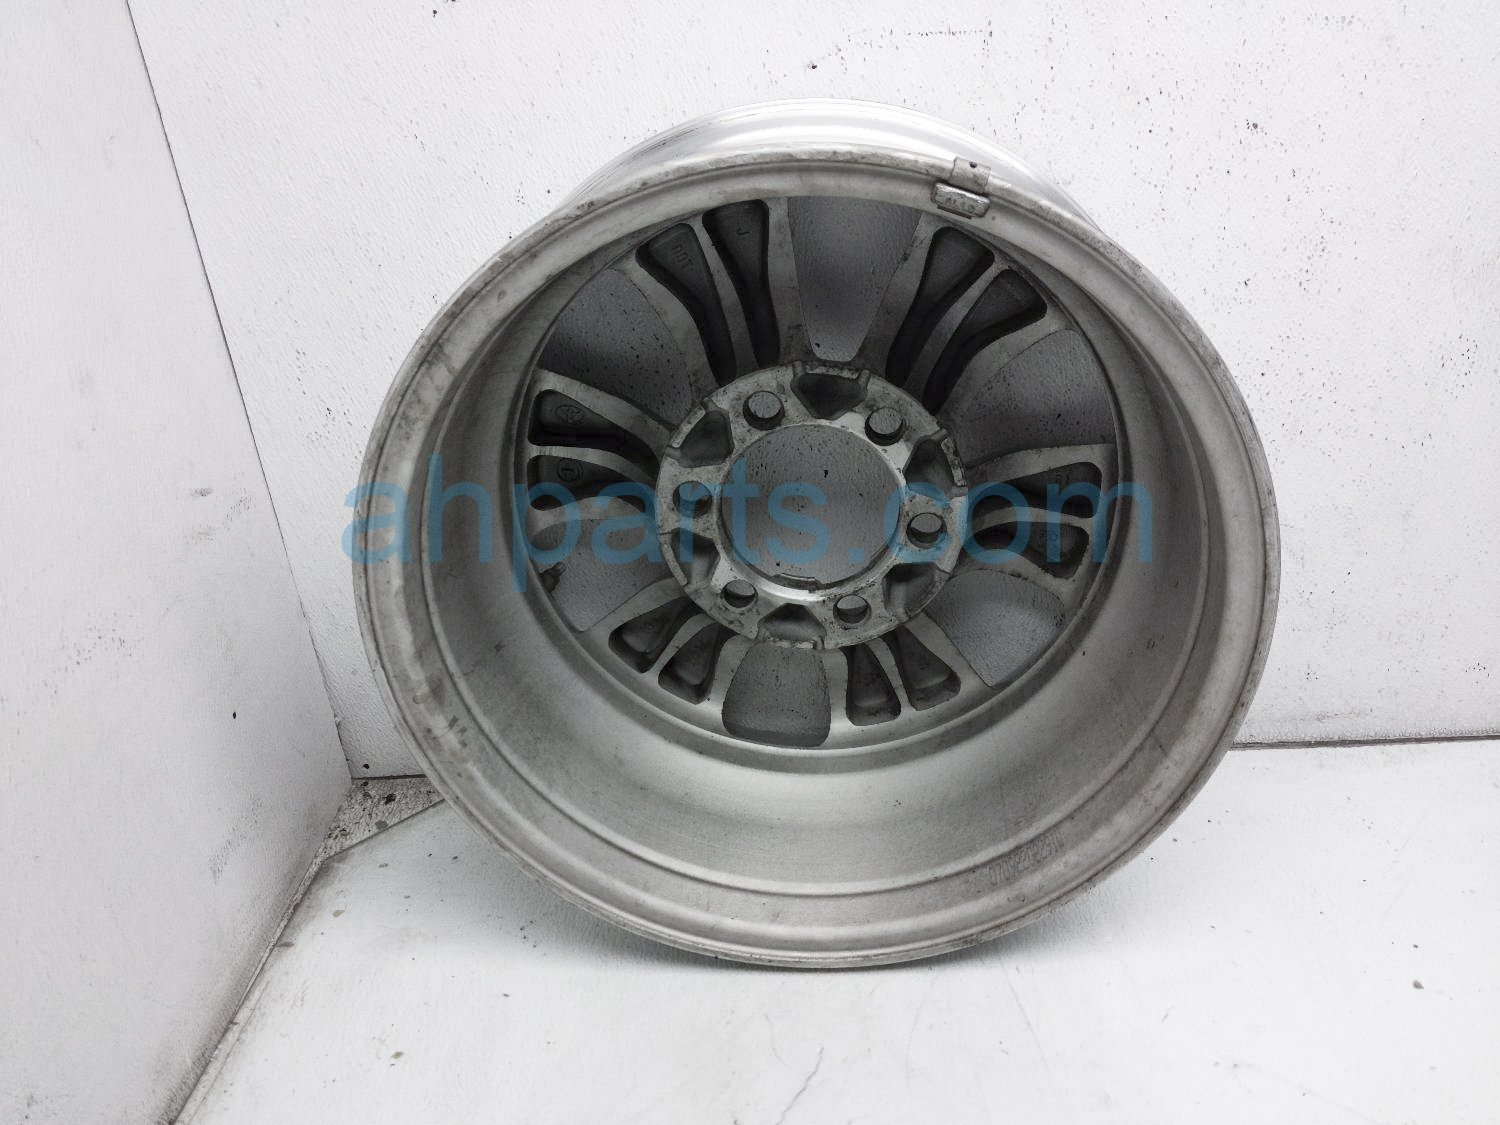 2008 Toyota 4 Runner 16x7 Alloy Spare Wheel / Rim 42611 35251 Replacement